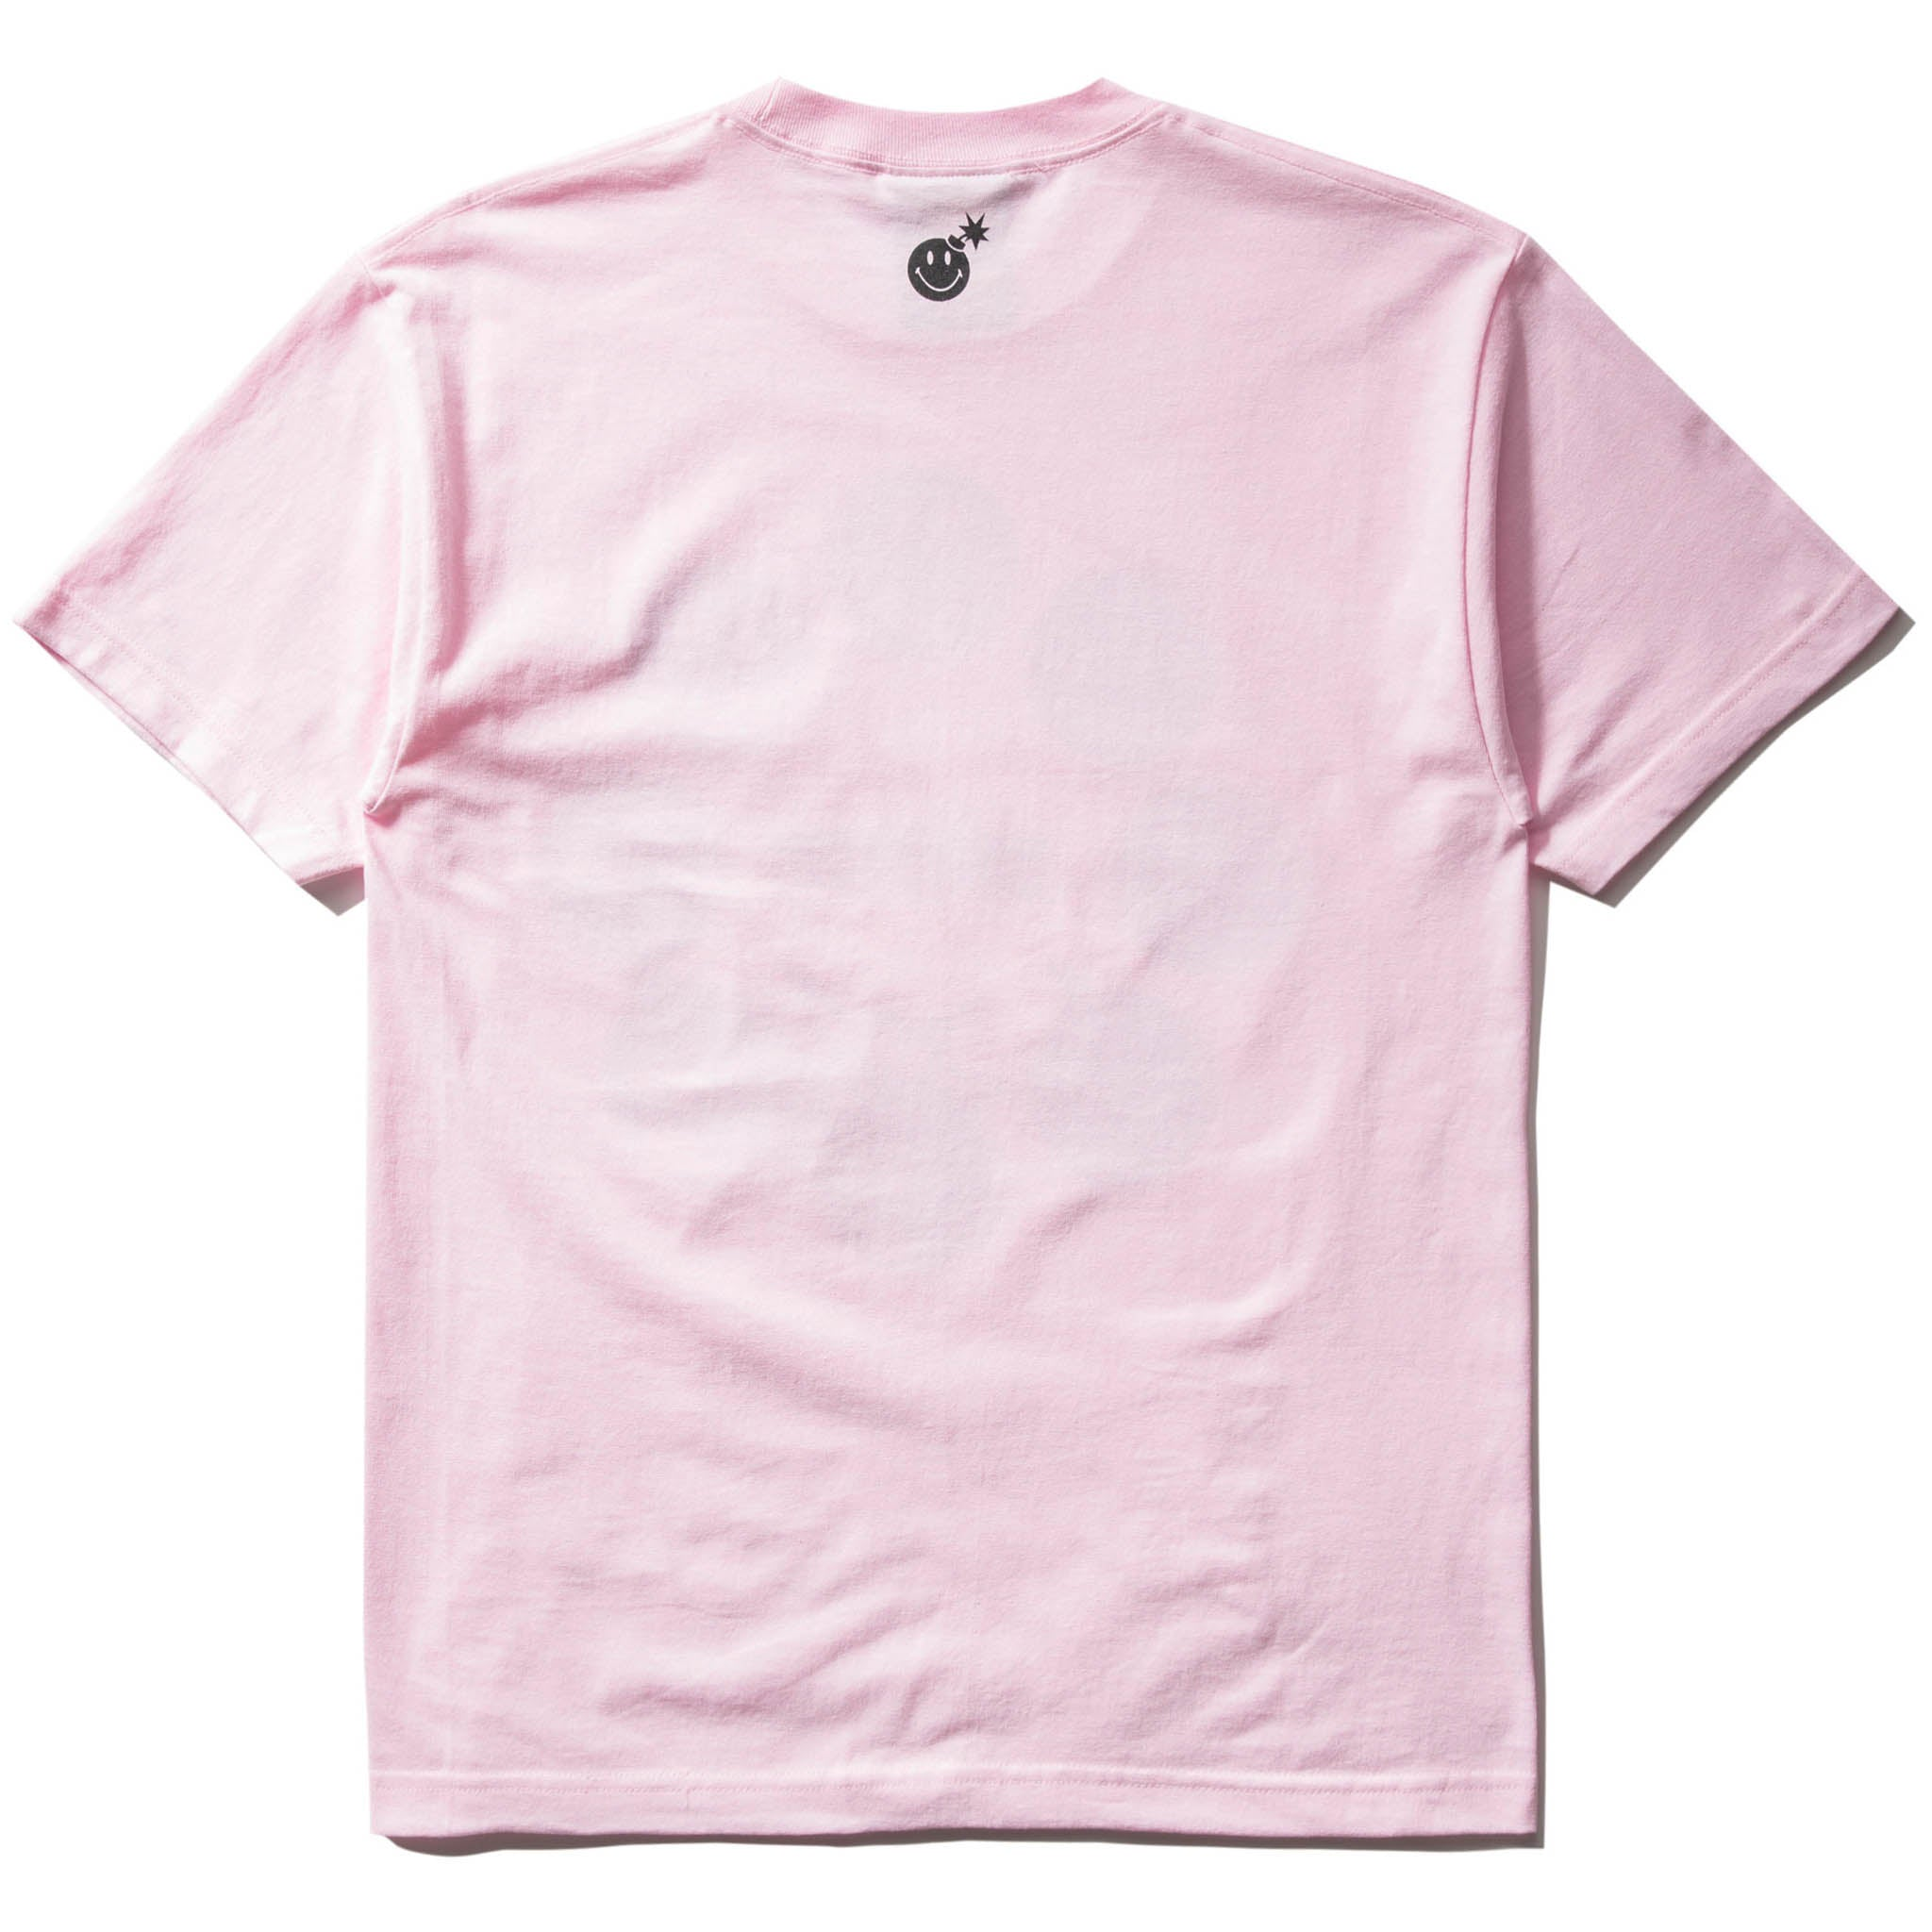 THE HUNDREDS x CTM CYCLE T-SHIRT (PINK)